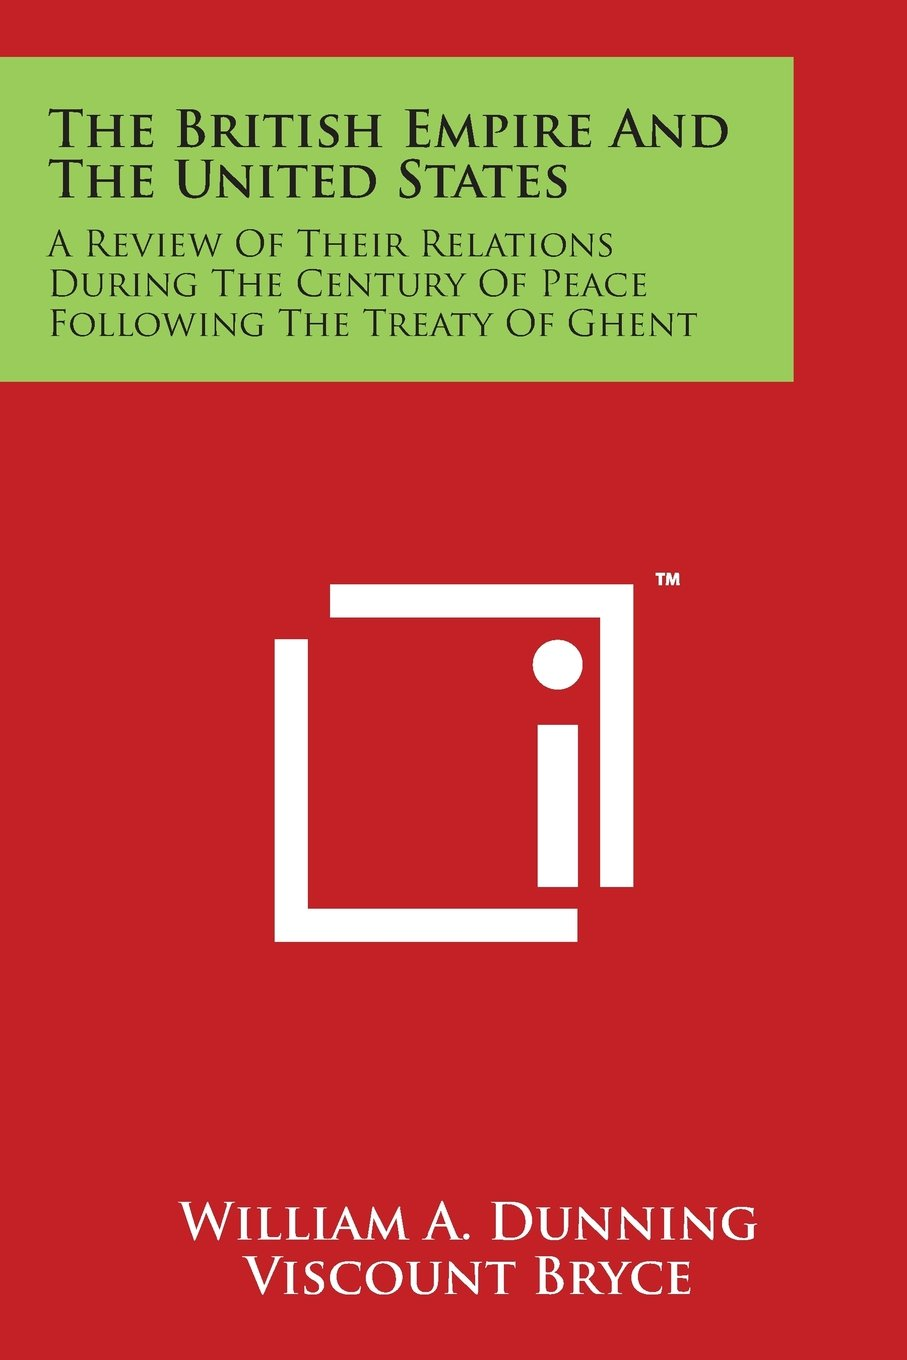 Download The British Empire and the United States: A Review of Their Relations During the Century of Peace Following the Treaty of Ghent ebook